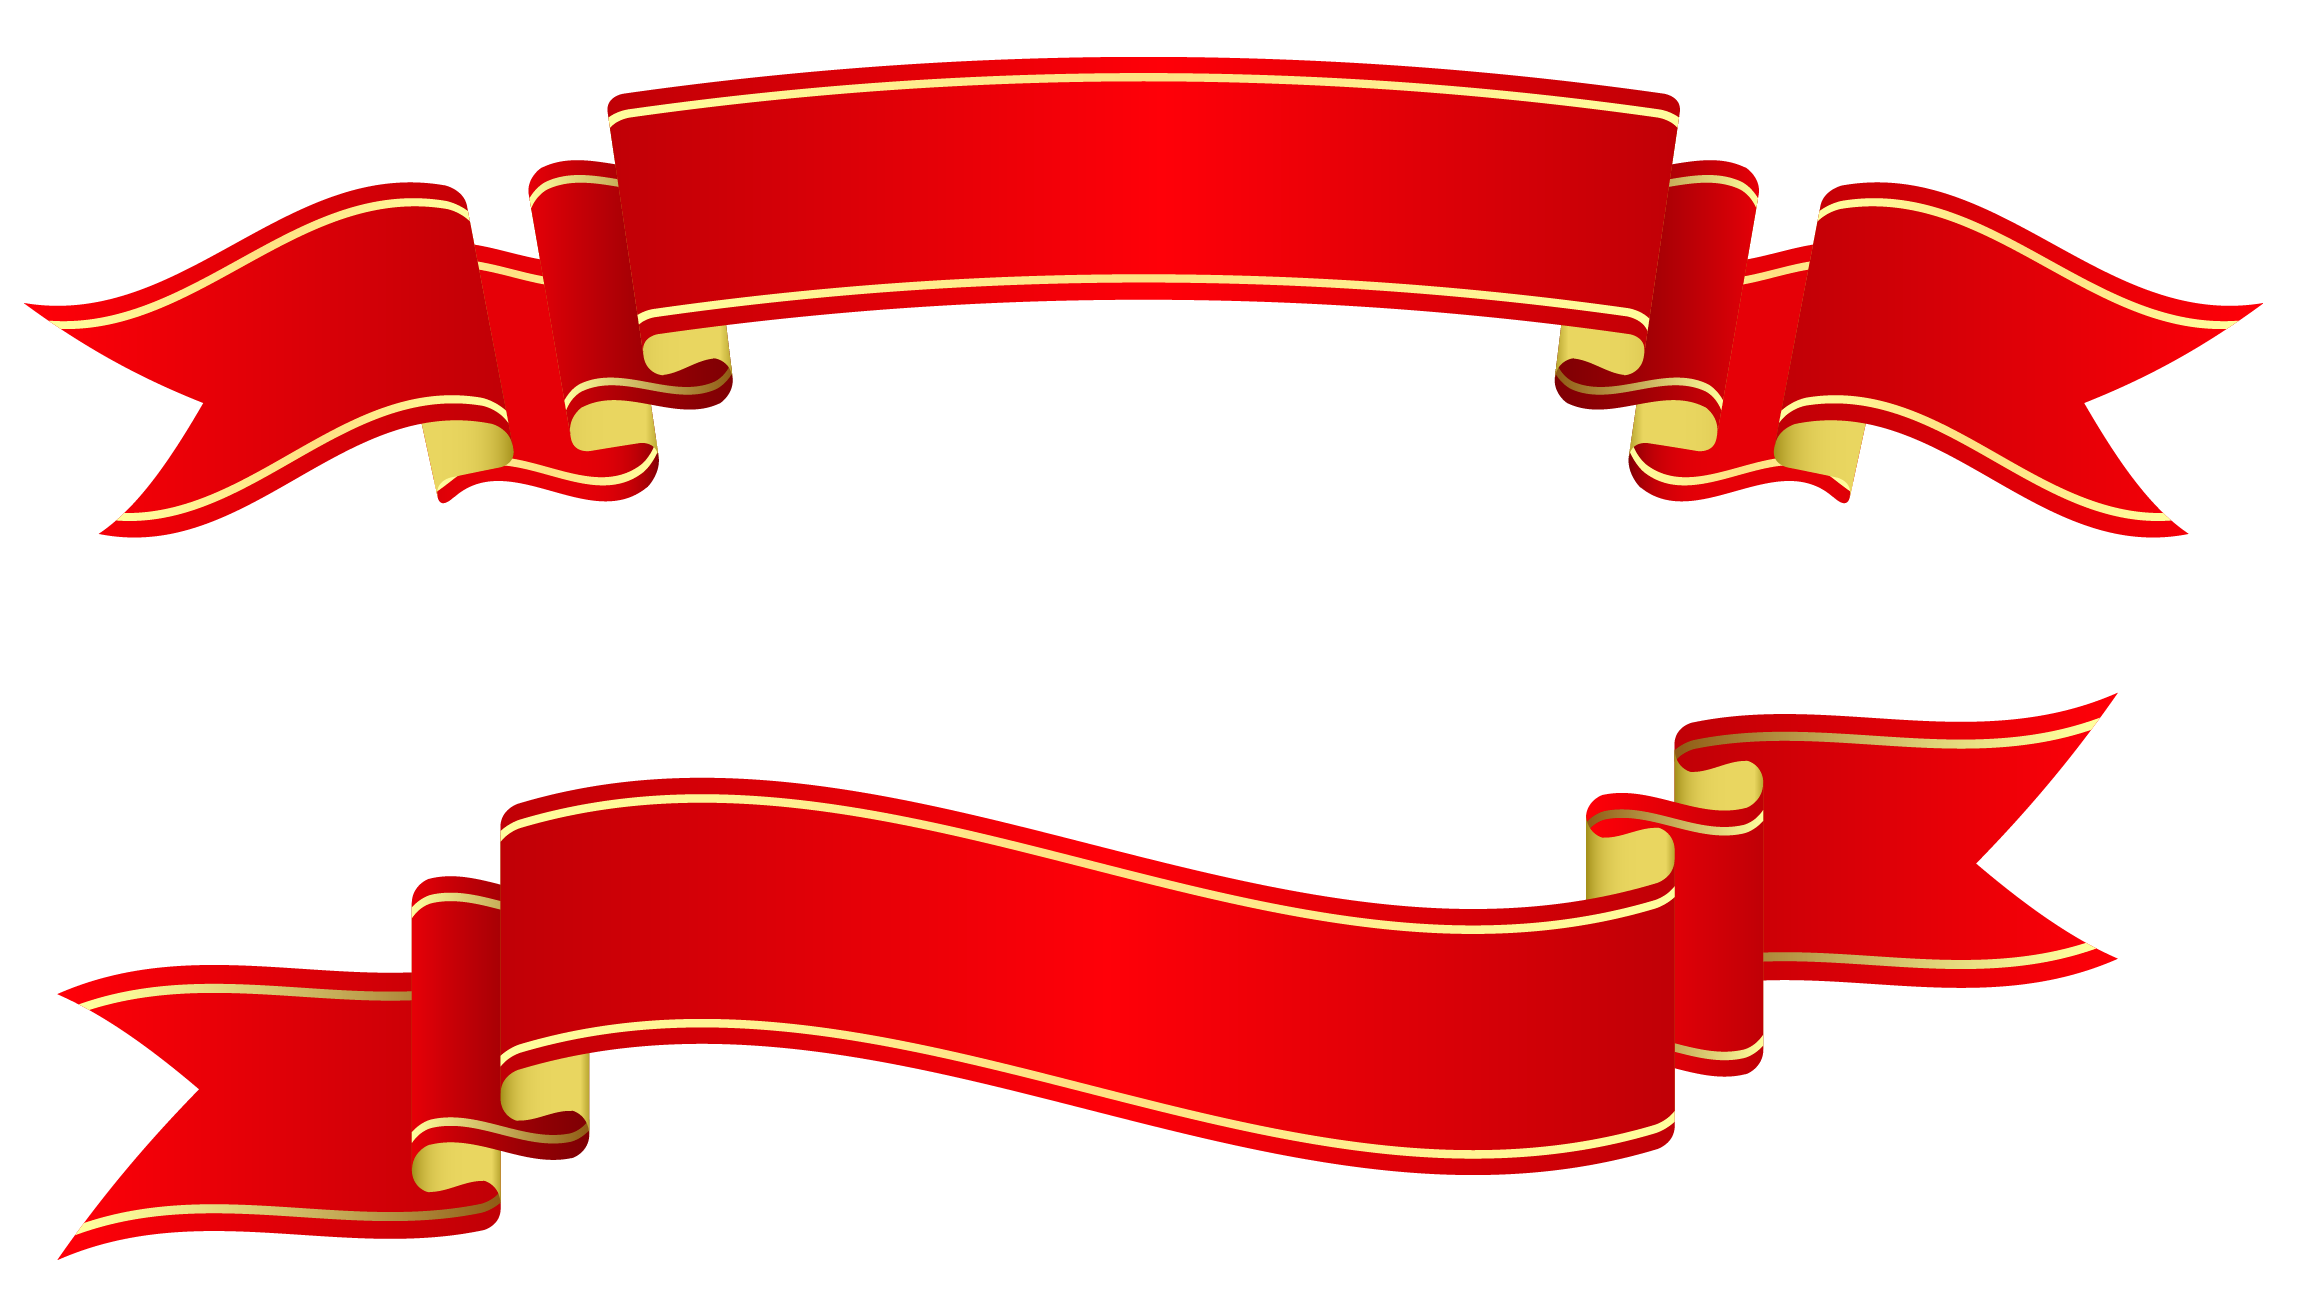 Banner Ribbon Png Red Banners Png Clipart Image #809 - Ribbon, Transparent background PNG HD thumbnail